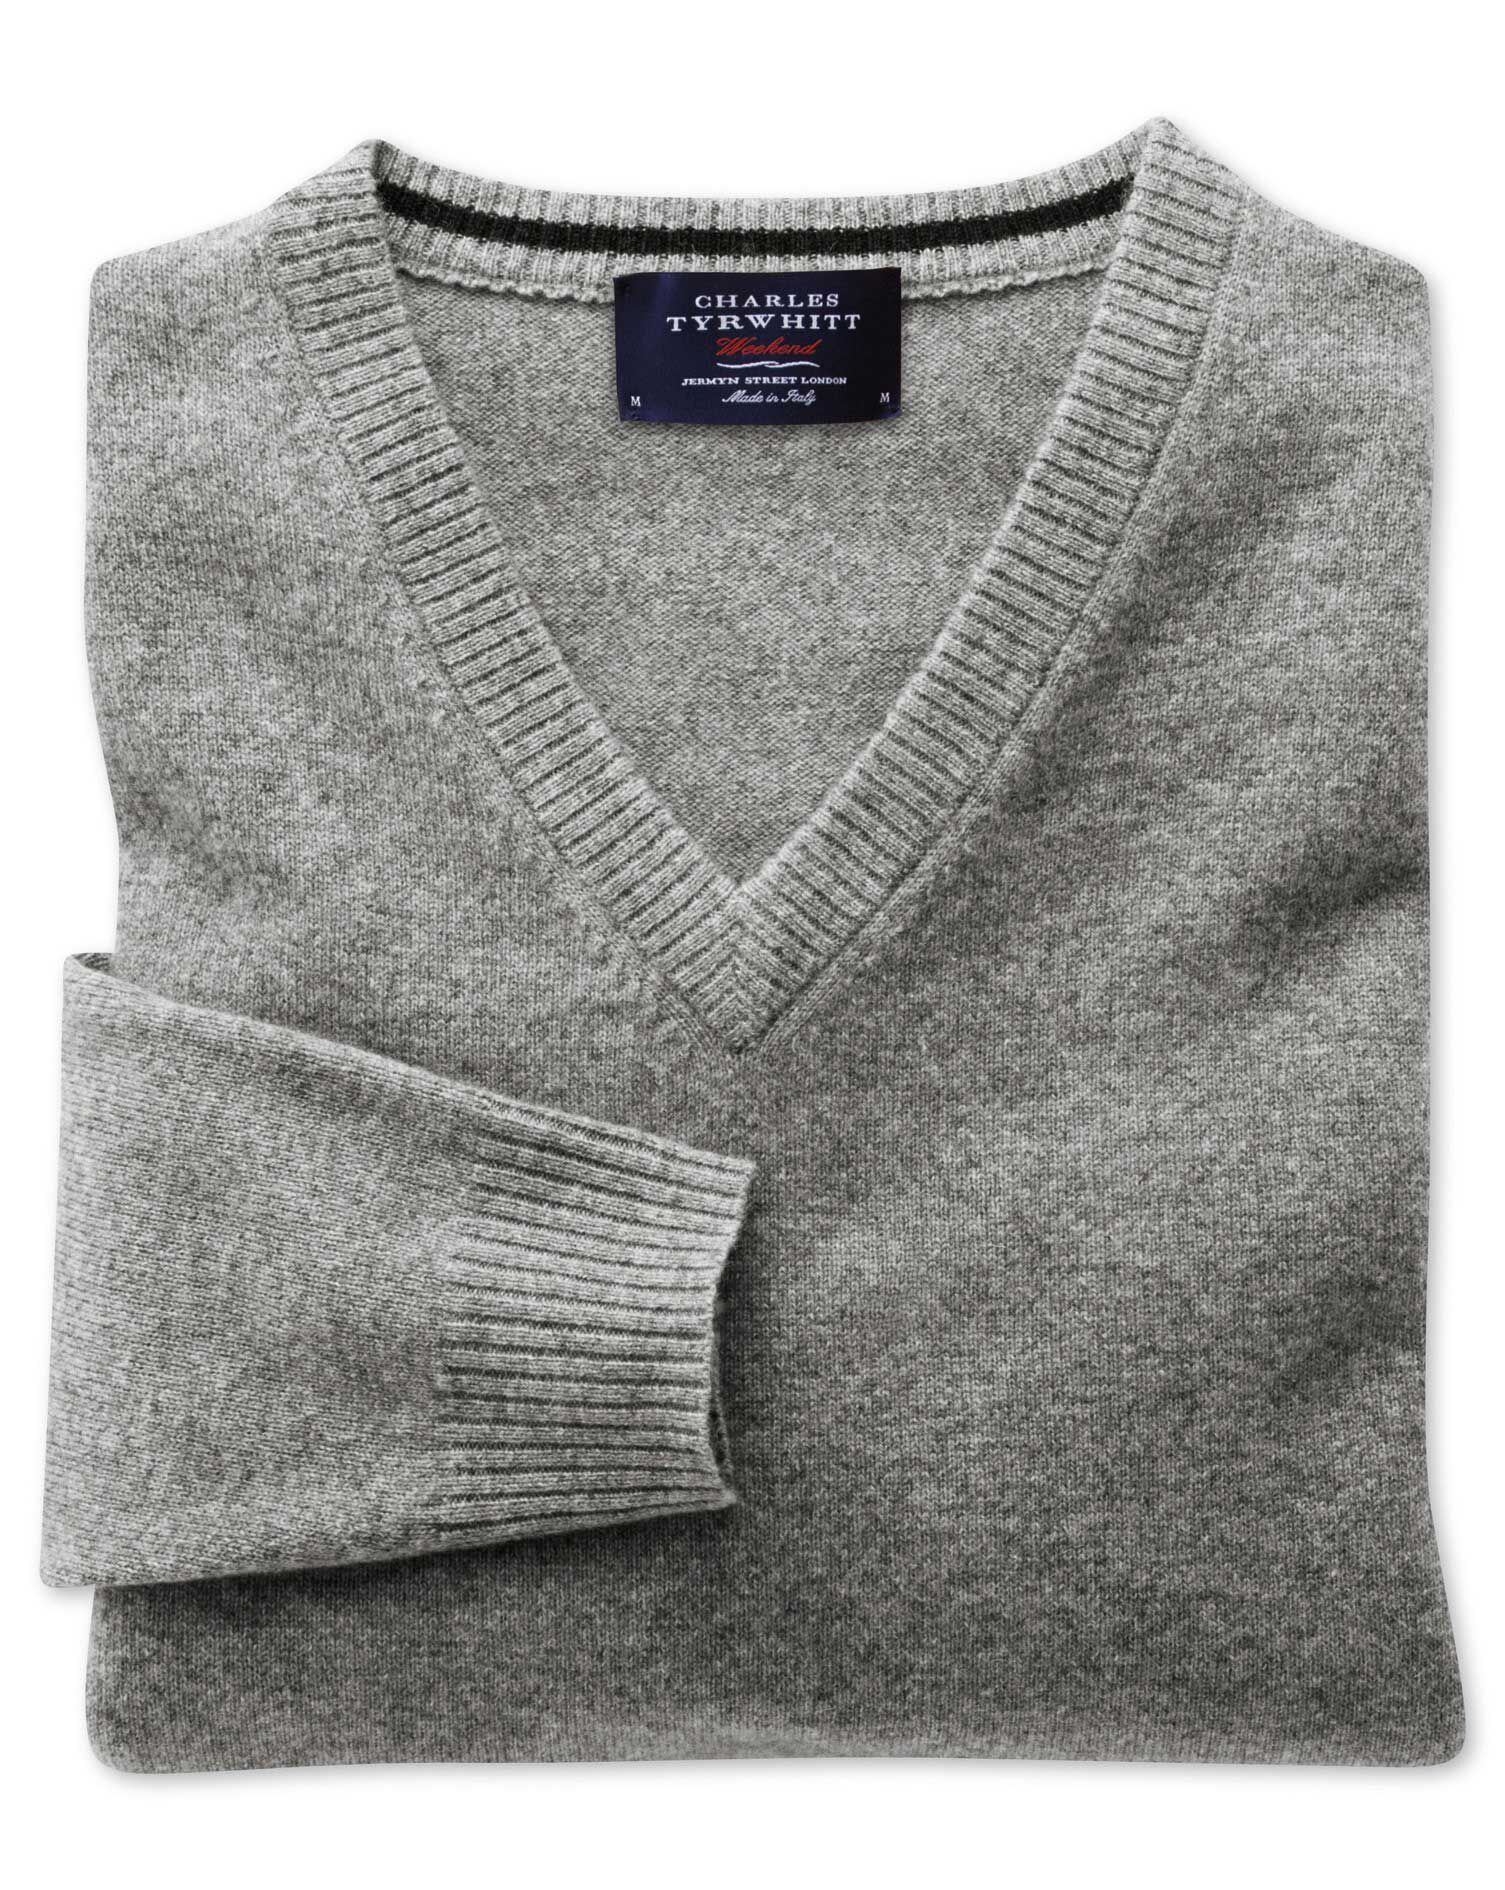 Silver Grey Cashmere V-Neck Jumper Size Small by Charles Tyrwhitt